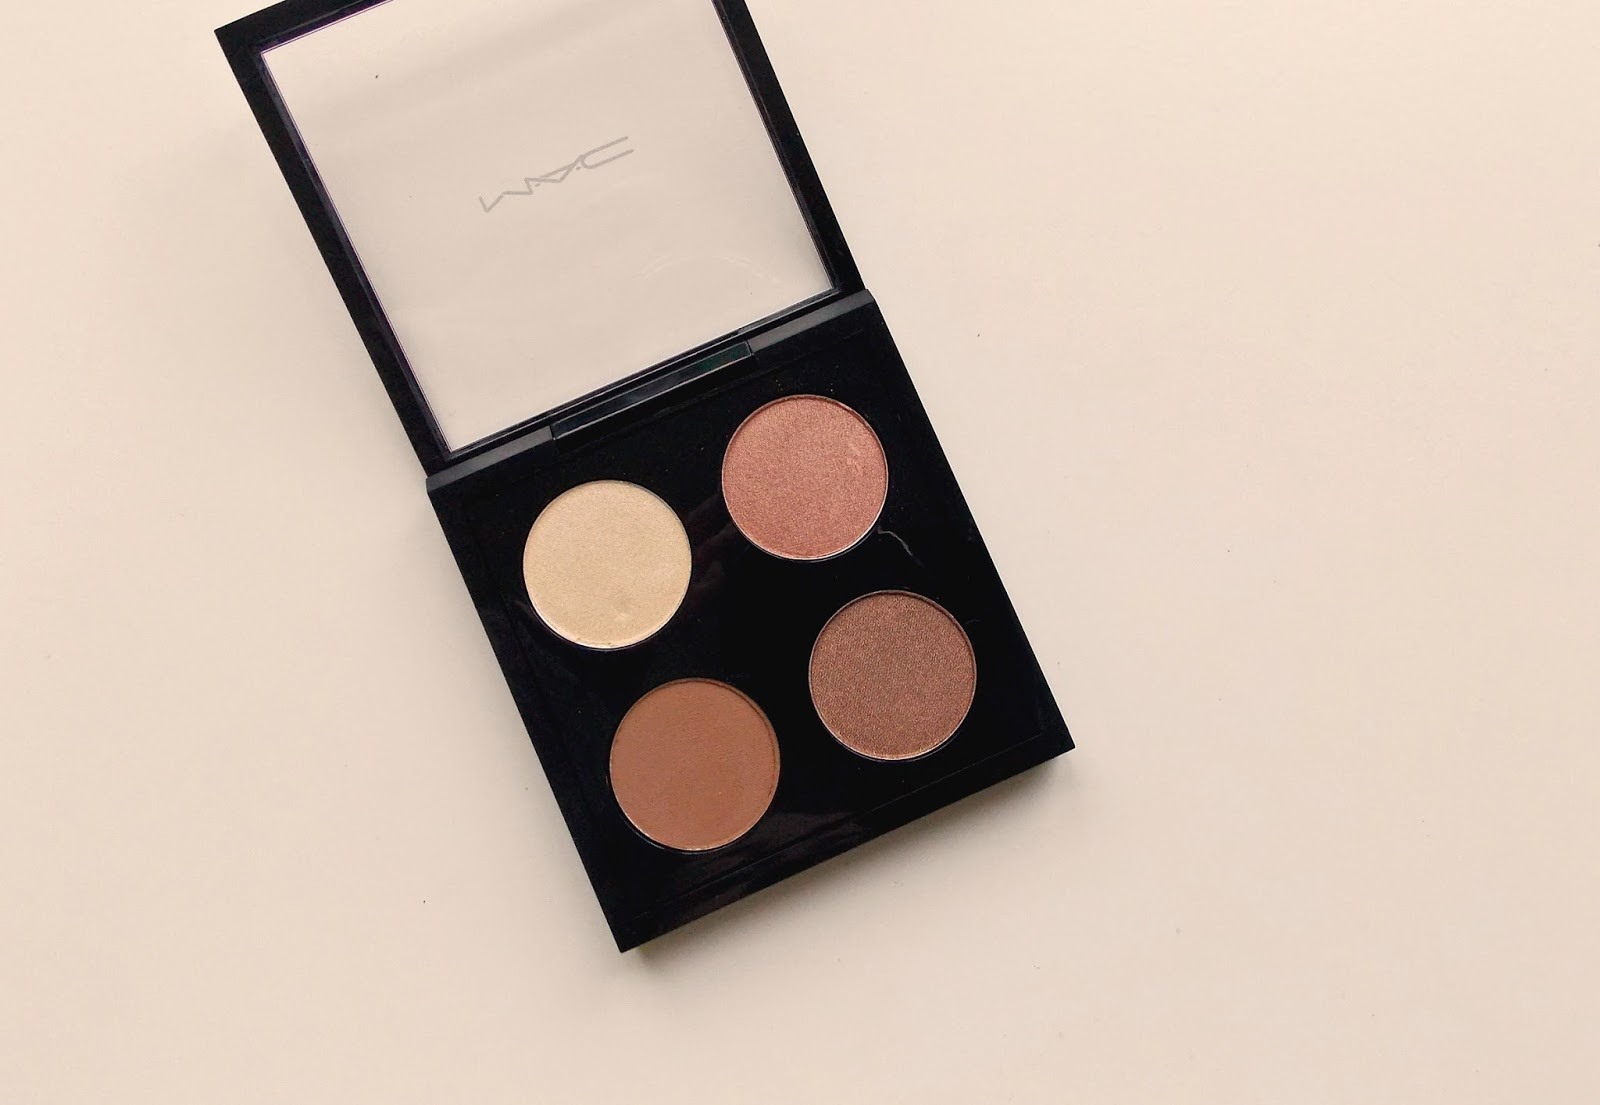 MAC personal eyeshadow quad, pro palette, review, photo, swatches, finished